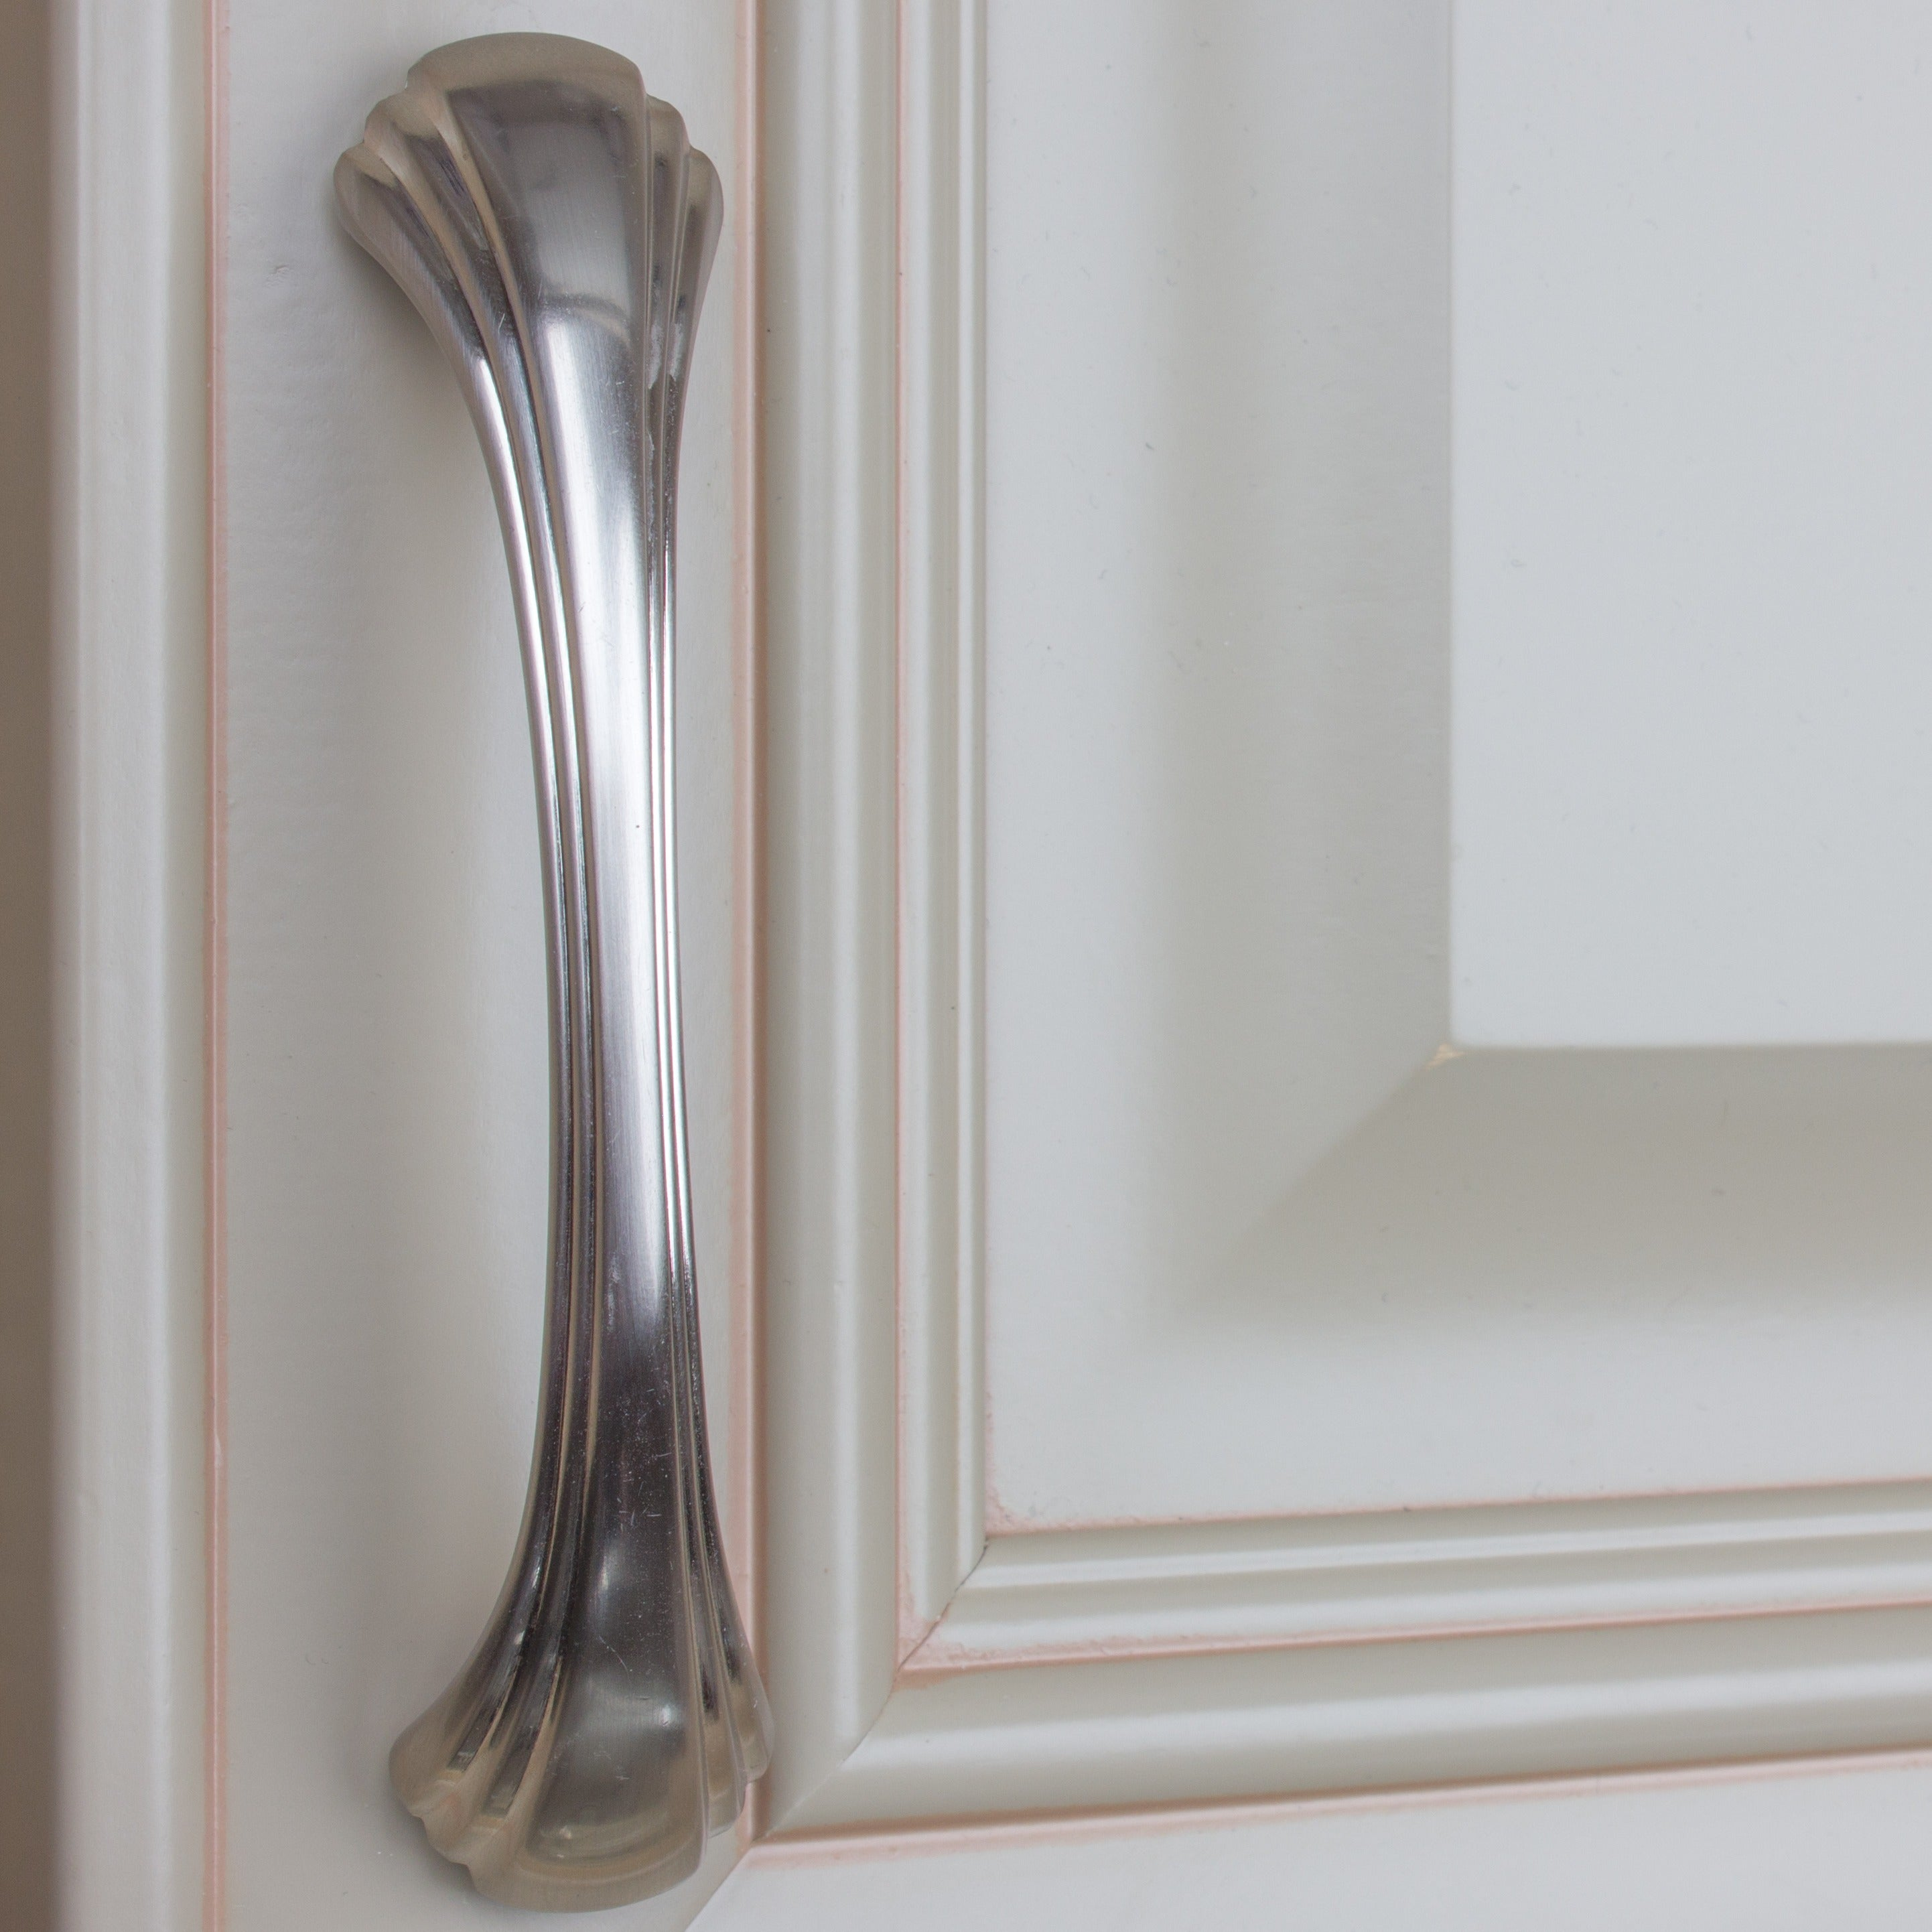 Ordinaire Shop GlideRite 4.5 Inch CC Satin Nickel Shell Cabinet Pulls (Case Of 10)    Free Shipping On Orders Over $45   Overstock   9121254